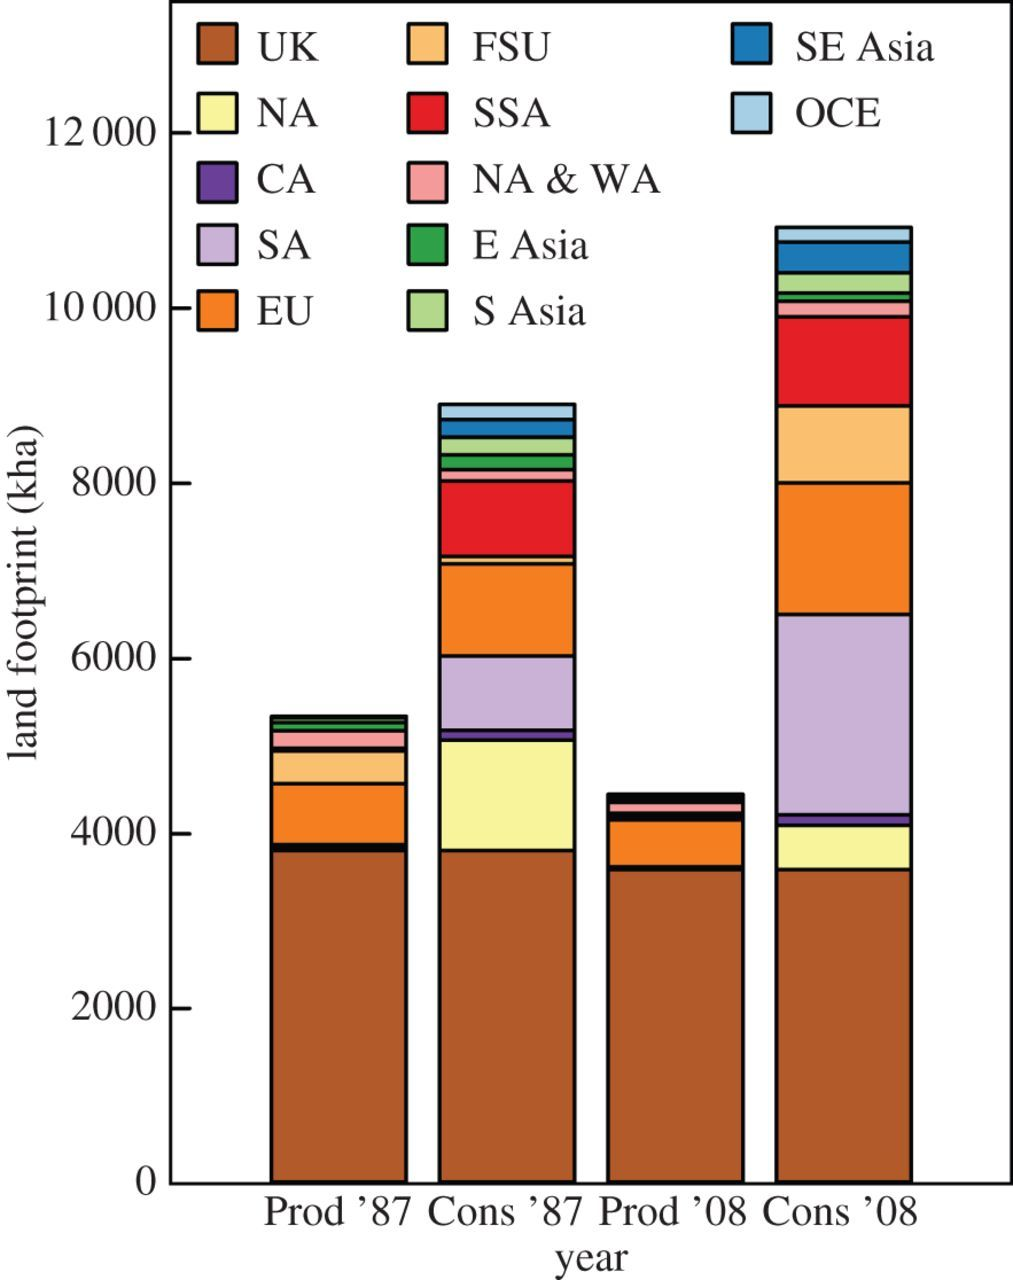 Global cropland and greenhouse gas impacts of UK food supply